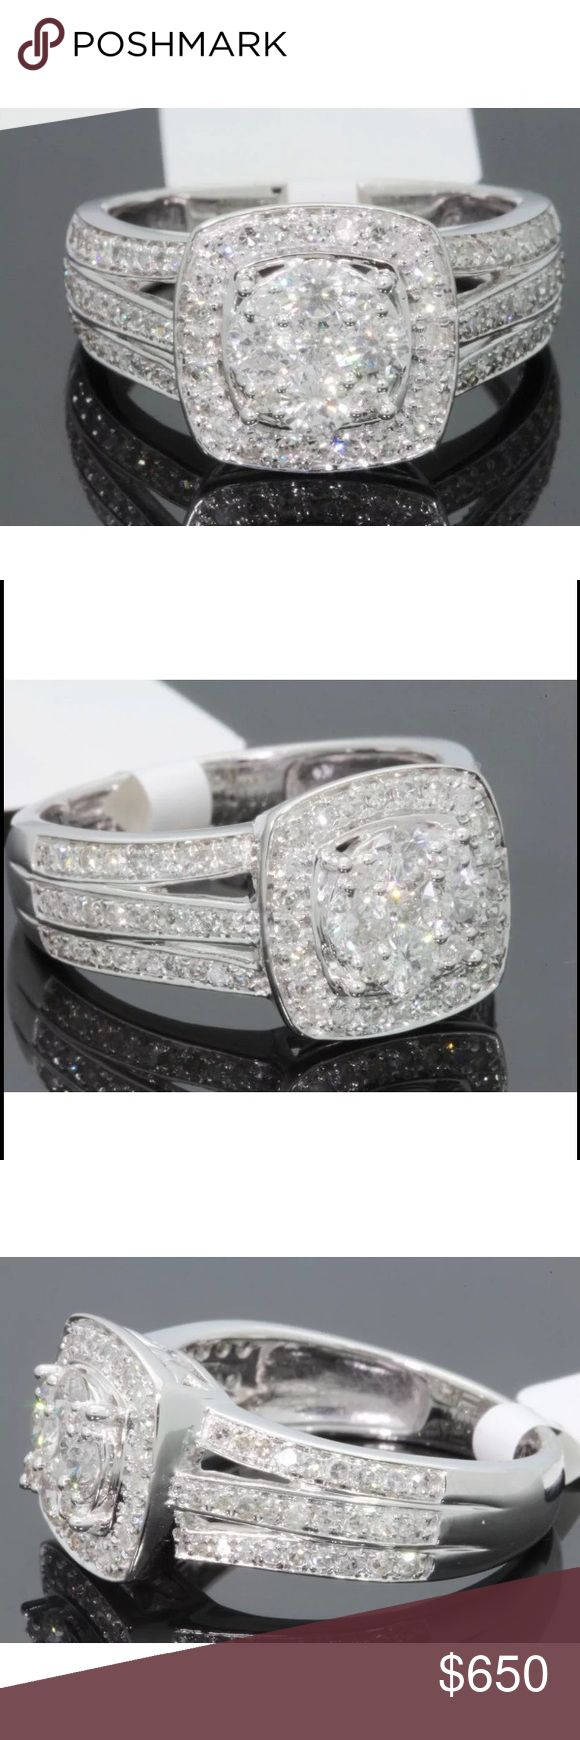 Amazing 1.10 carat 10k white gold diamond ring Amazing 1.10 carat 10k white gold diamond ring! This ring has a ton of sparkle! High quality diamonds! Retail over $3800!!! Jewelry Rings